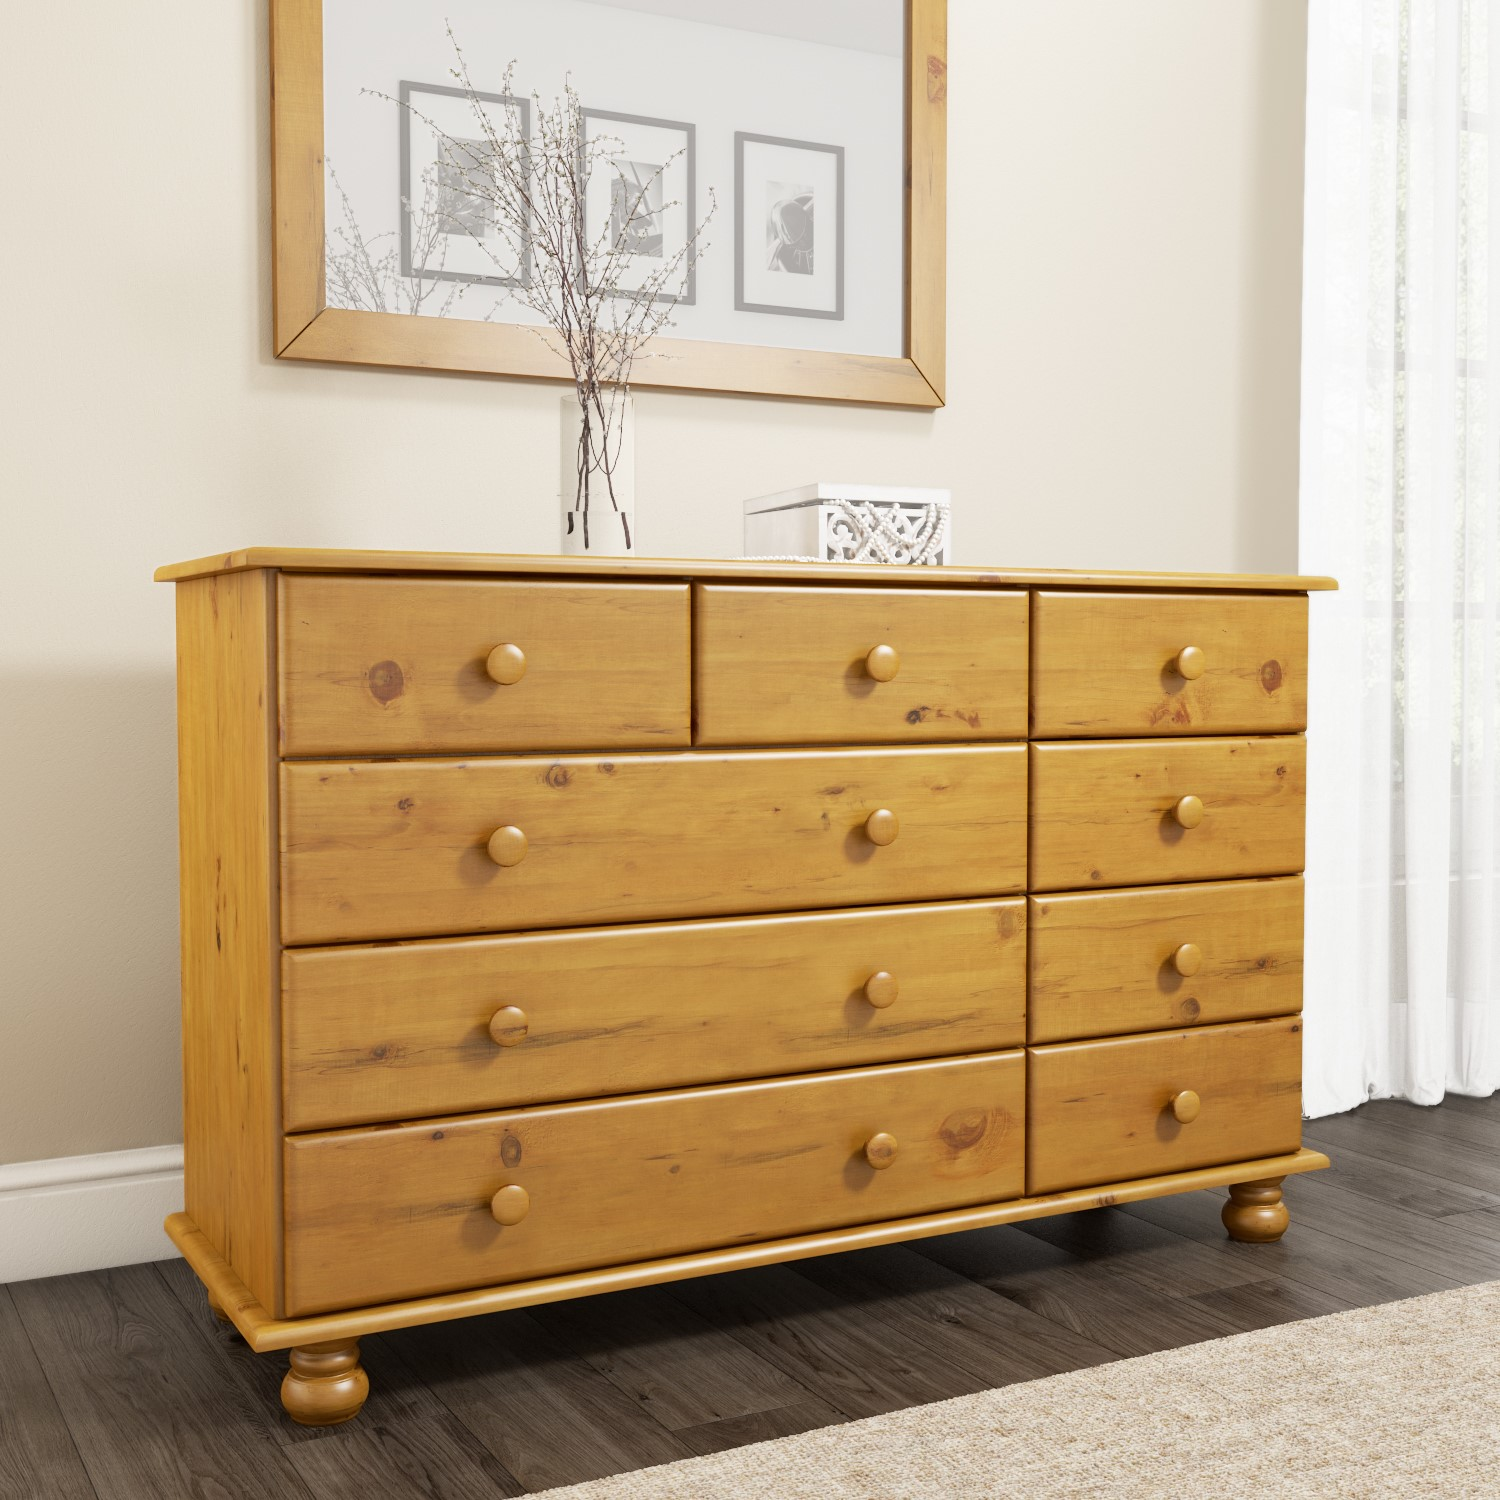 hamilton 2 3 4 wide chest of drawers in pine